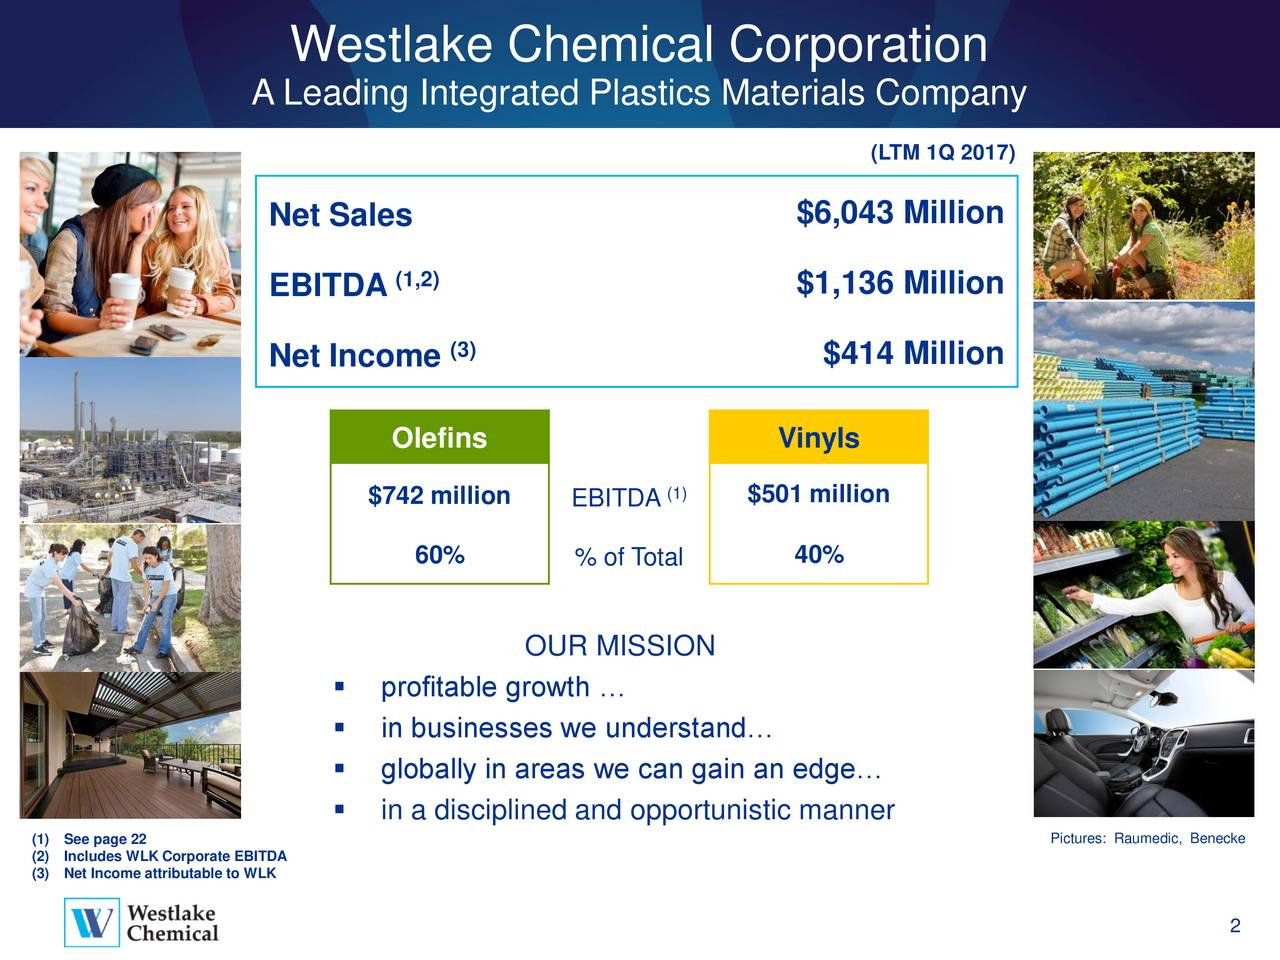 A Leading Integrated Plastics Materials Company (LTM 1Q 2017) Net Sales $6,043 Million (1,2) EBITDA $1,136 Million Net Income (3) $414 Million Olefins Vinyls $742 million EBITDA (1) $501 million 60% % of Total 40% OUR MISSION profitable growth in businesses we understand globally in areas we can gain an edge in a disciplined and opportunistic manner (1)See page 22 Pictures: Raumedic, Benecke (2)Includes WLK Corporate EBITDA (3)Net Income attributable to WLK 2